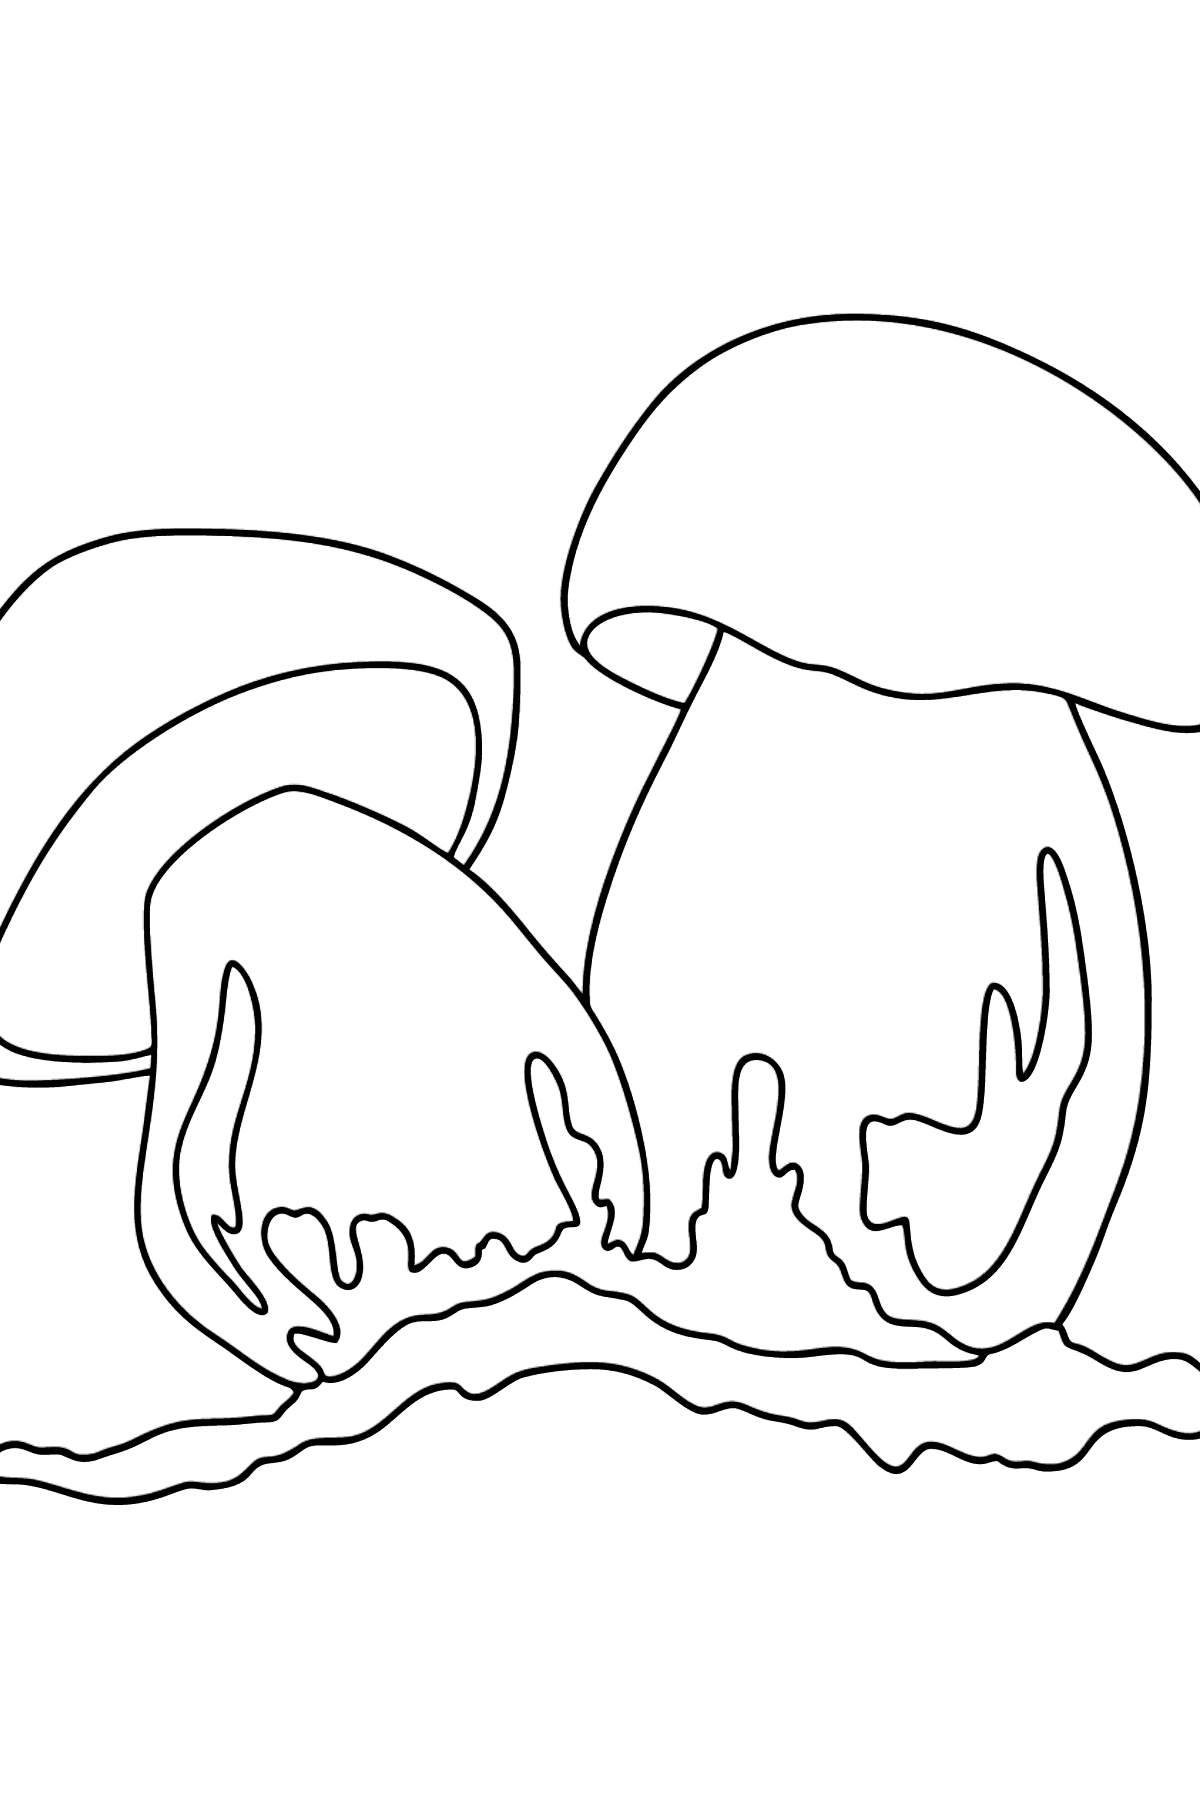 Lurid boletus coloring page - Coloring Pages for Kids